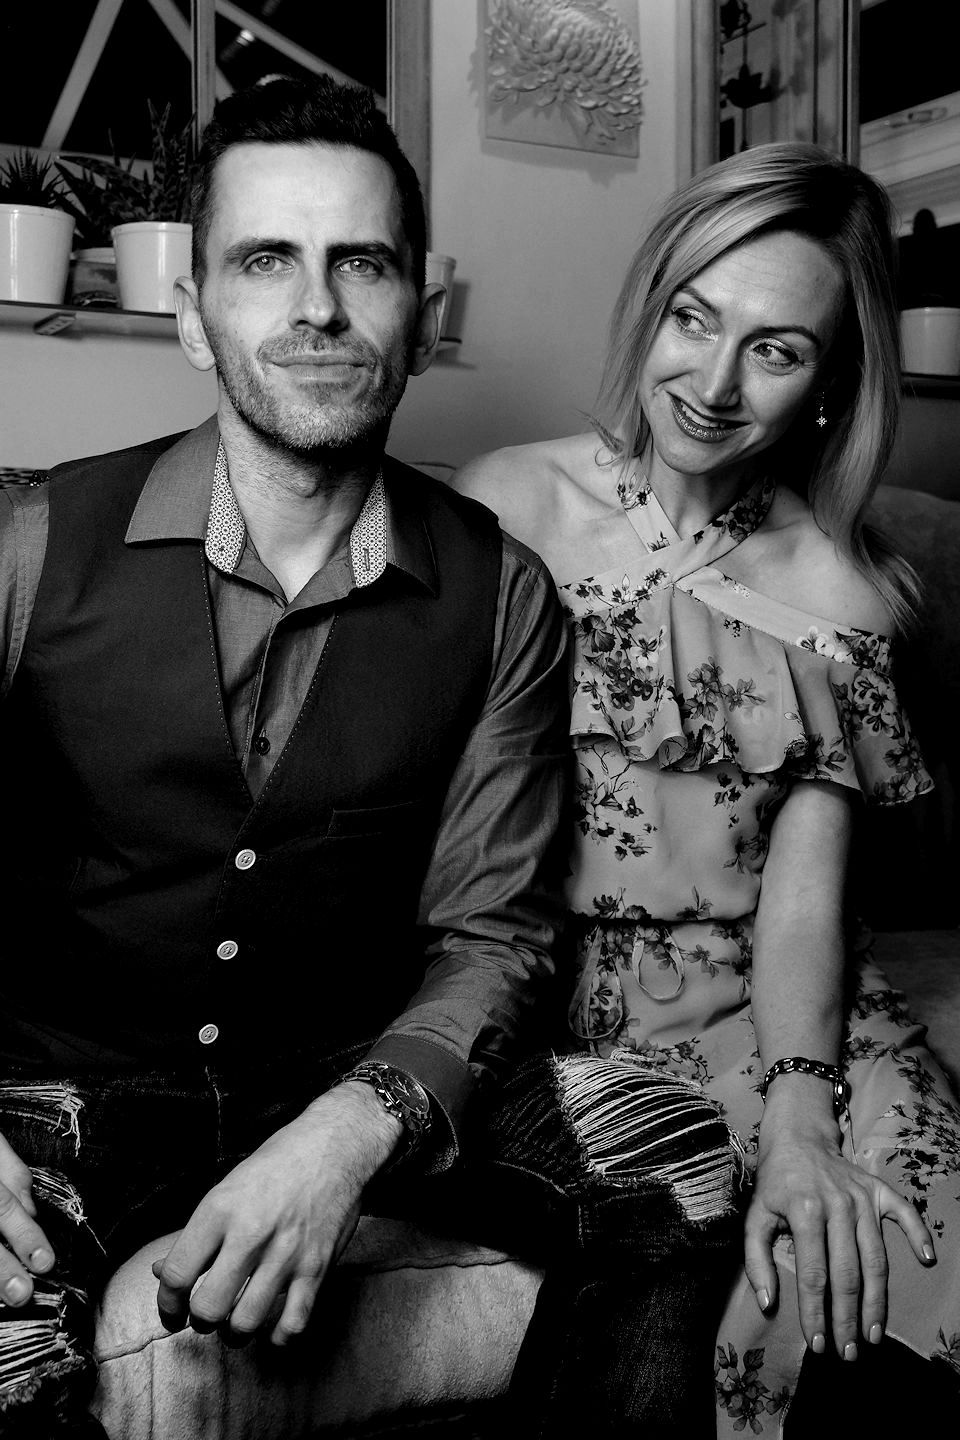 Glow Band Michelle and James chilled BW